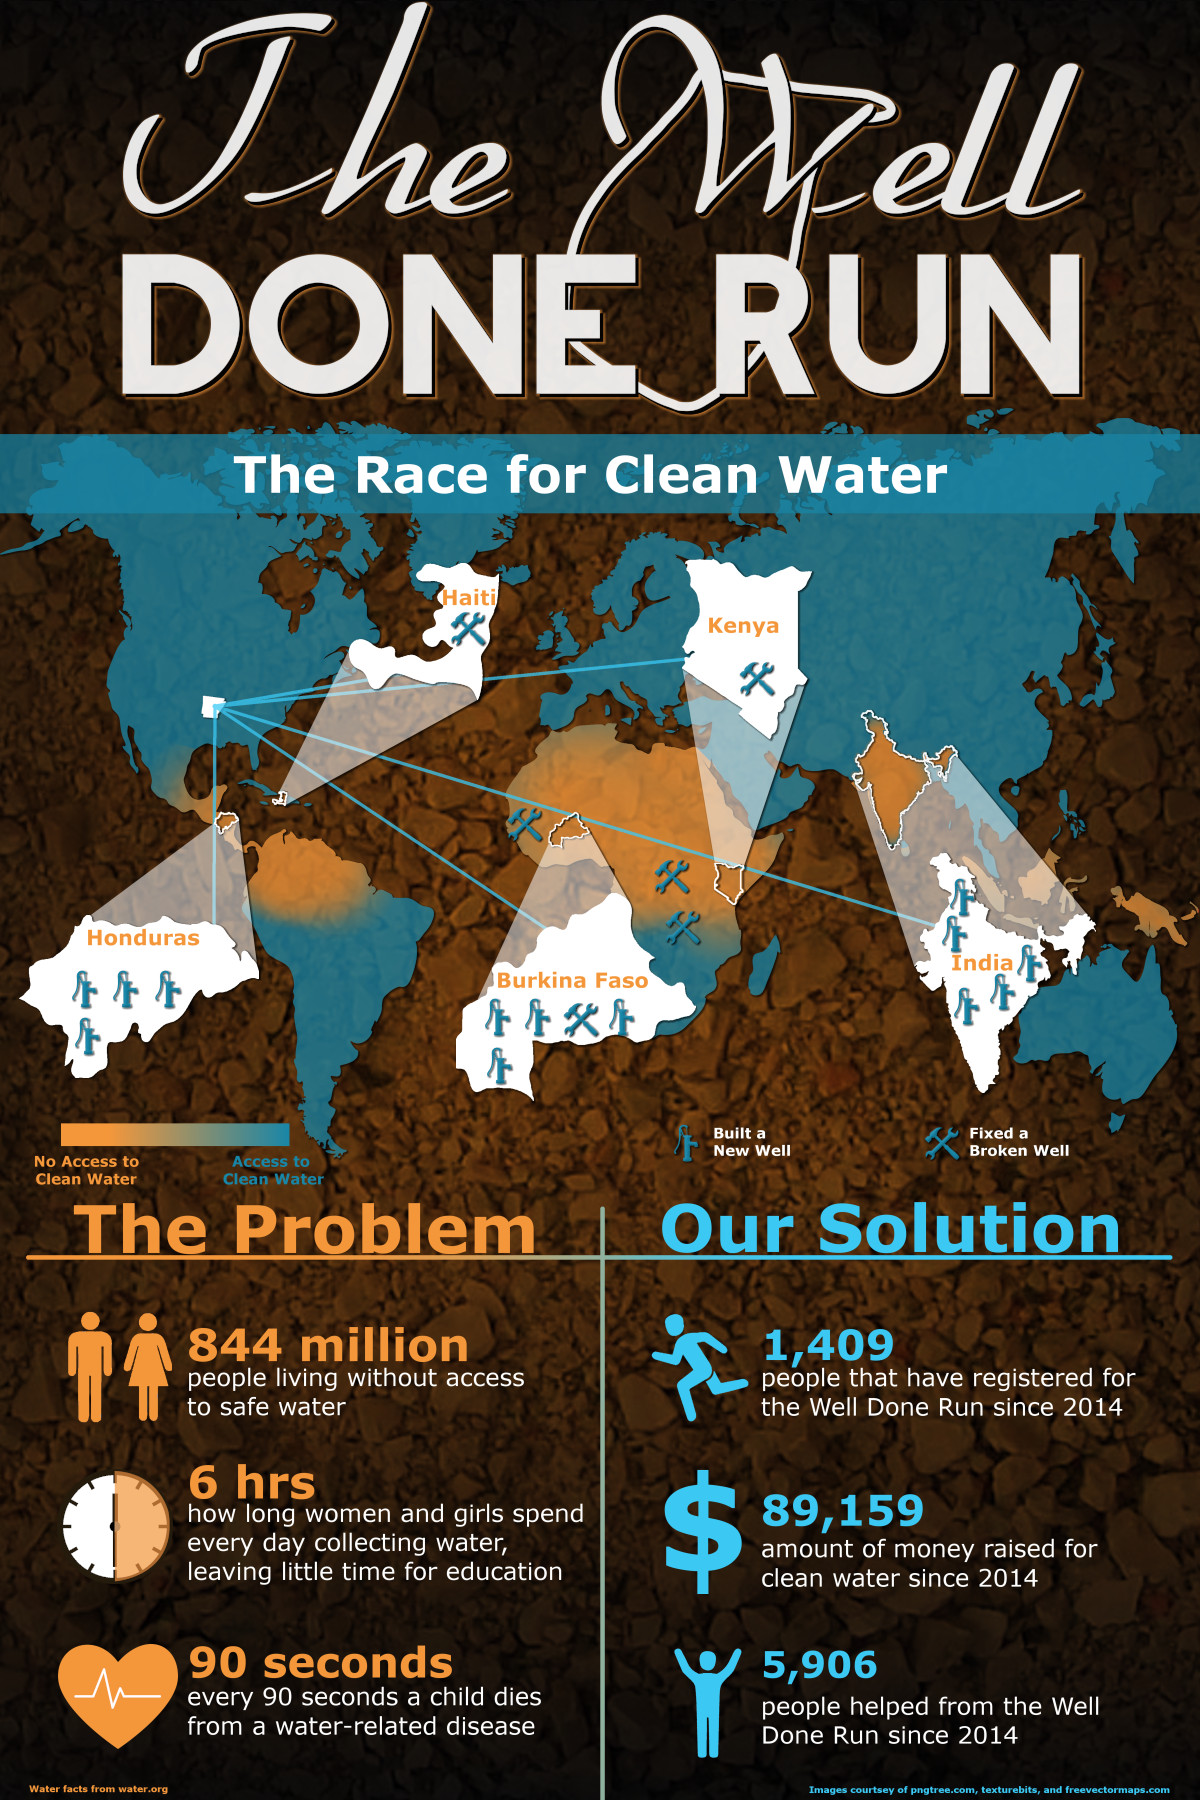 Infographic describing the impact that the Well Done Run has had around the world.